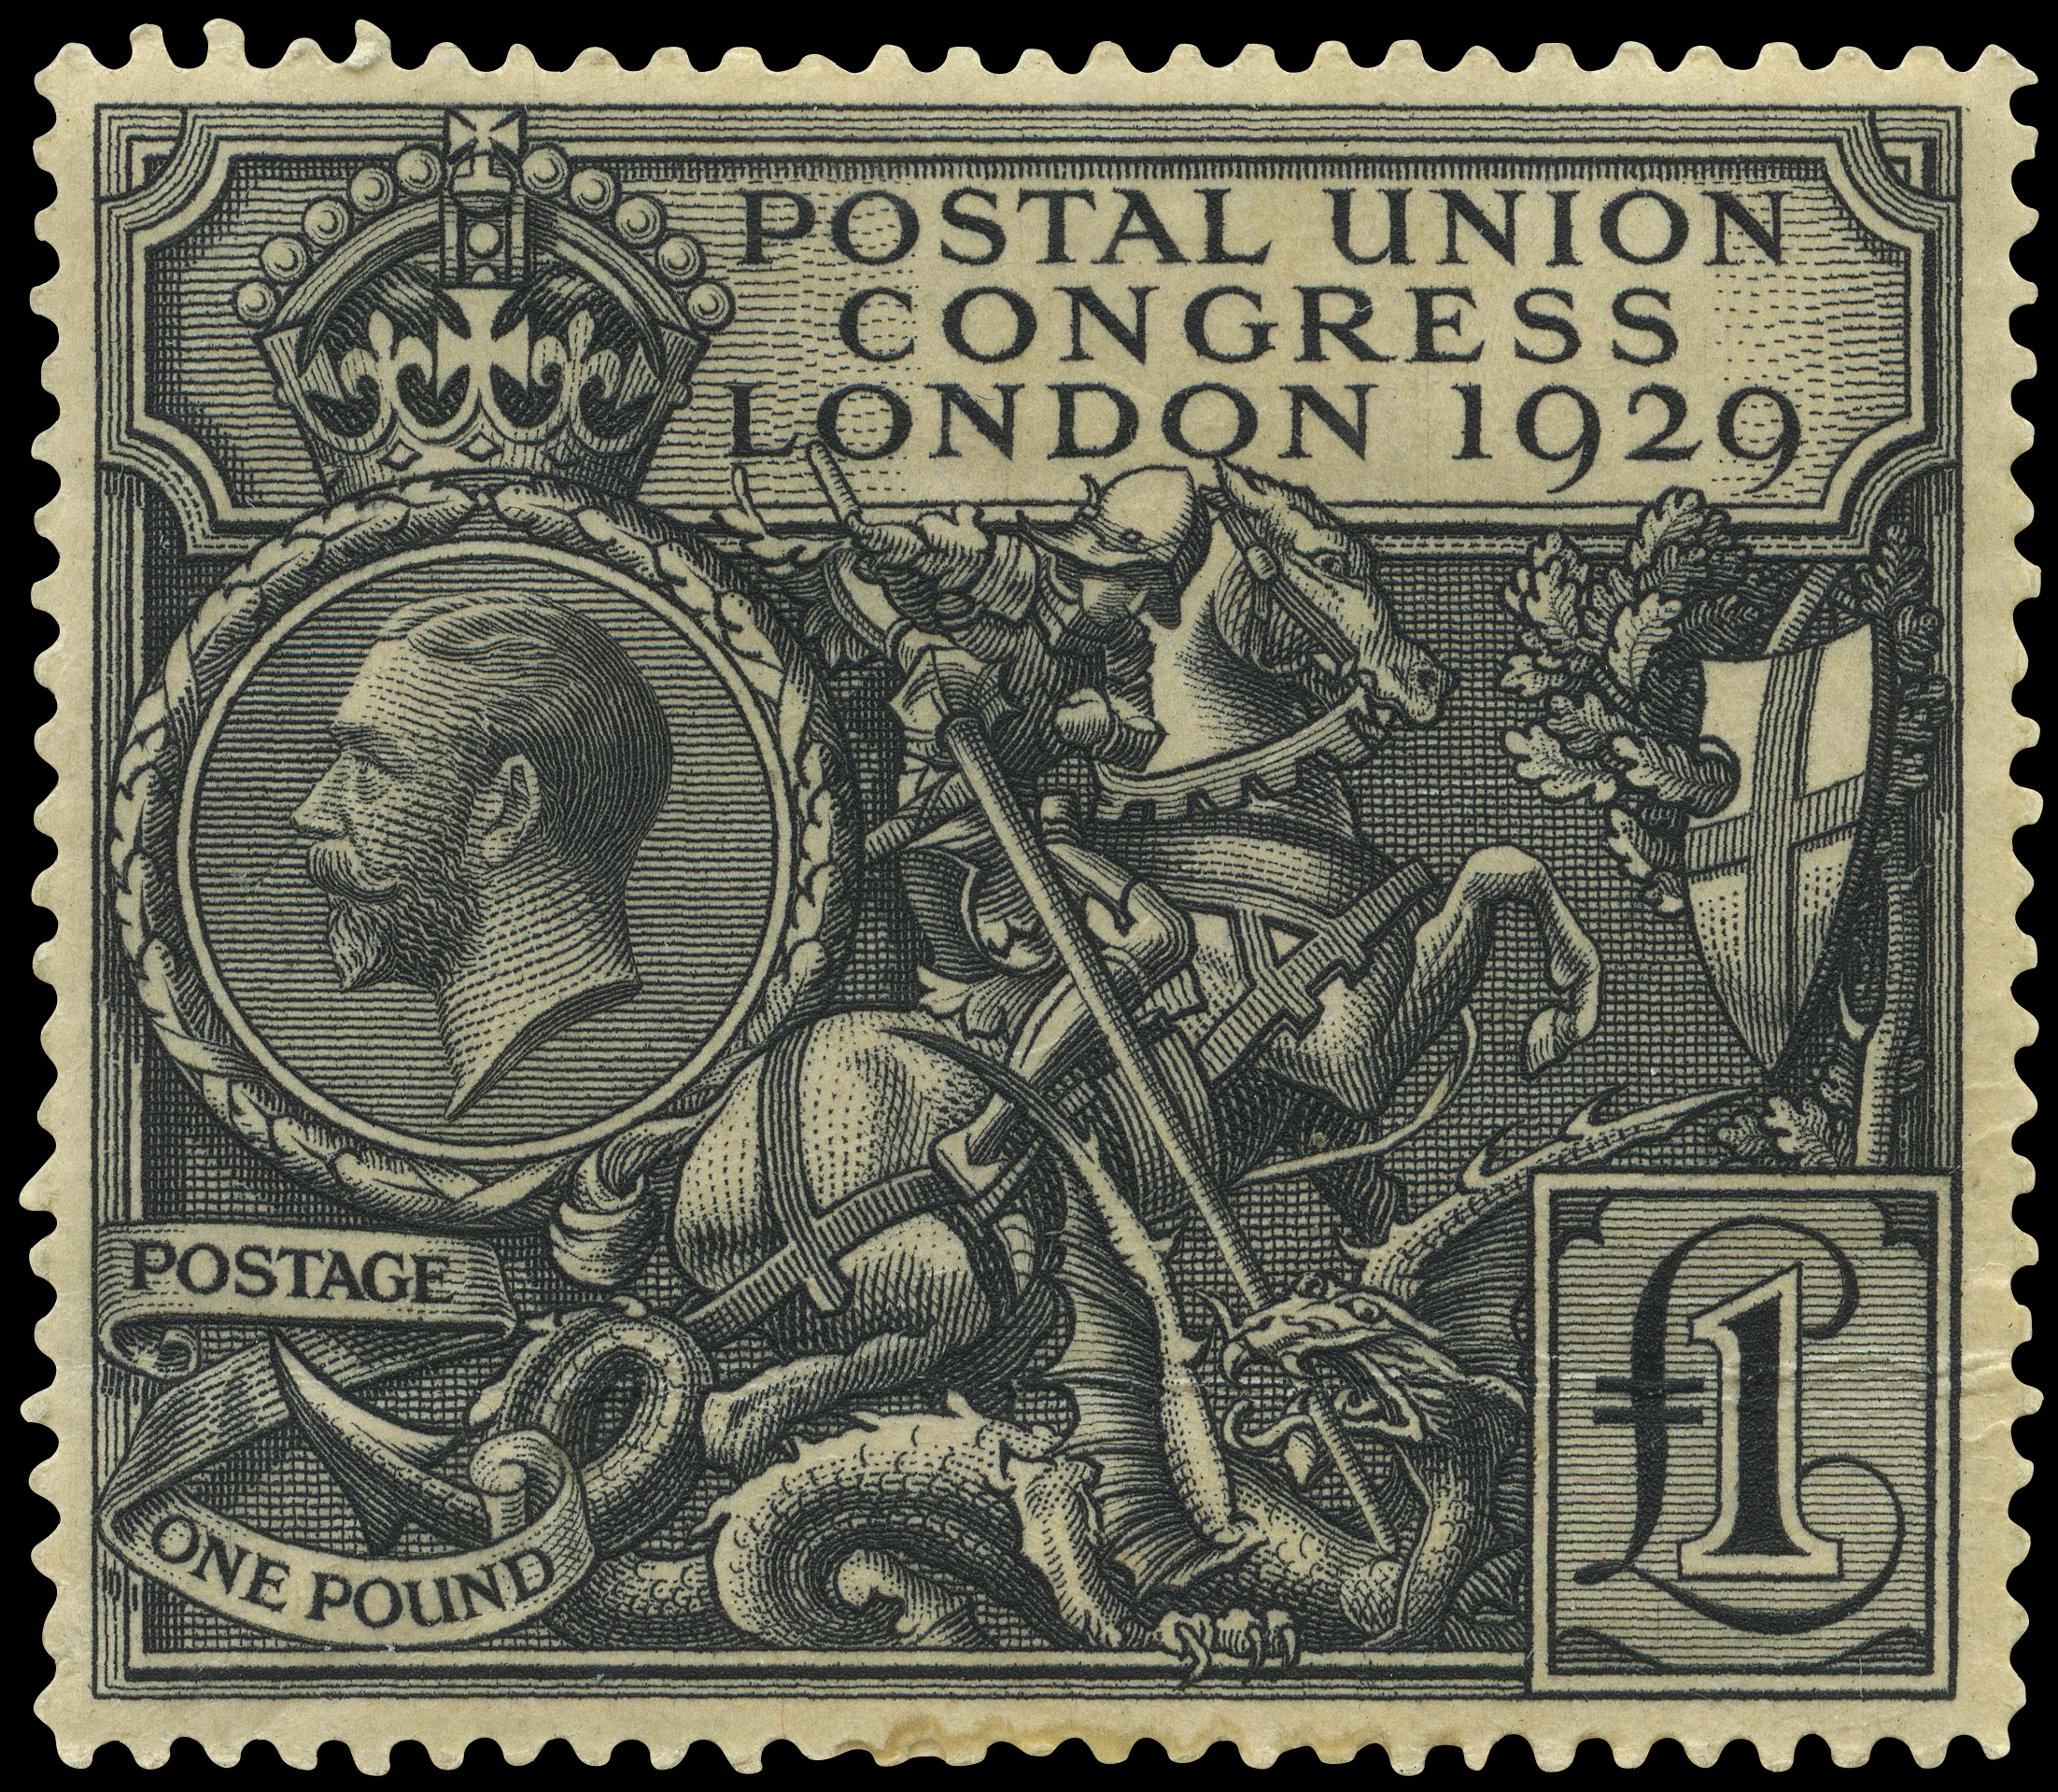 The issued stamp featuring St George on a horse spearing a dragon with a shield hanging in a tree.